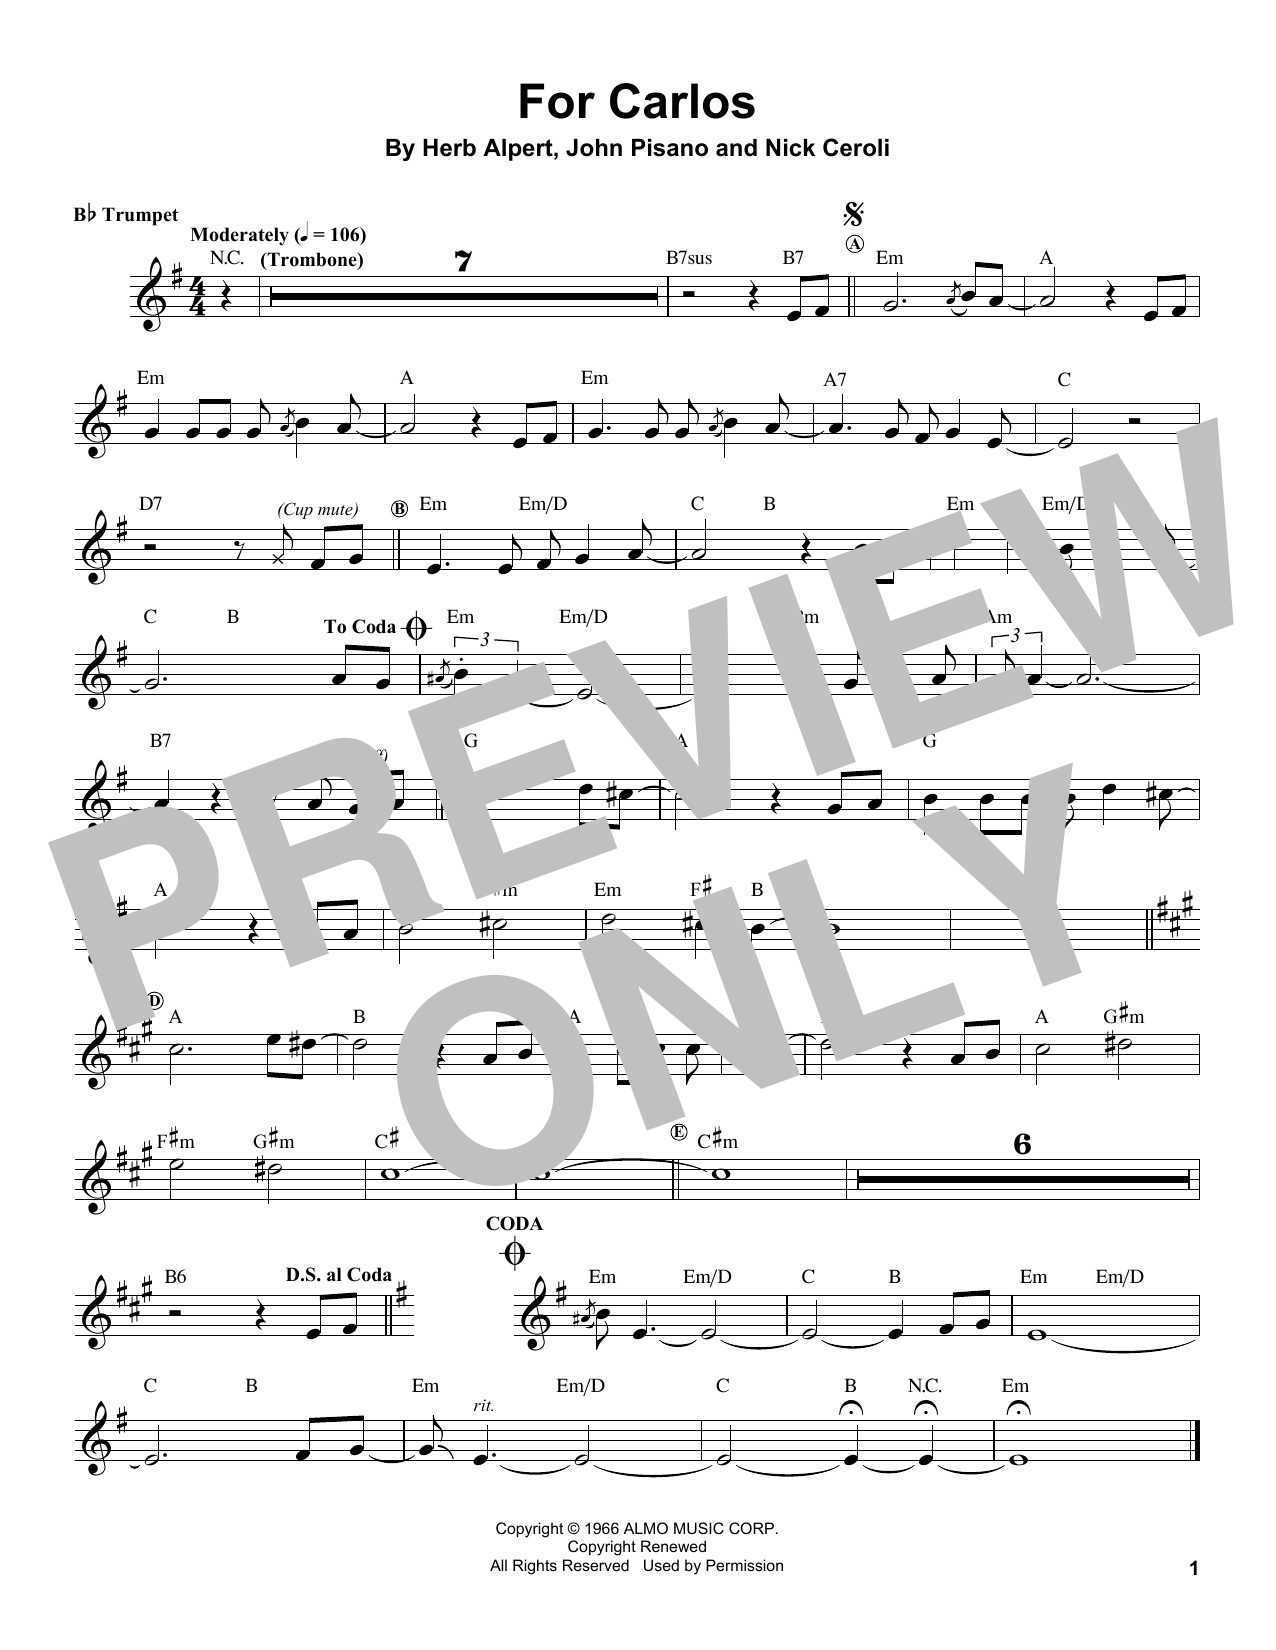 For Carlos Sheet Music